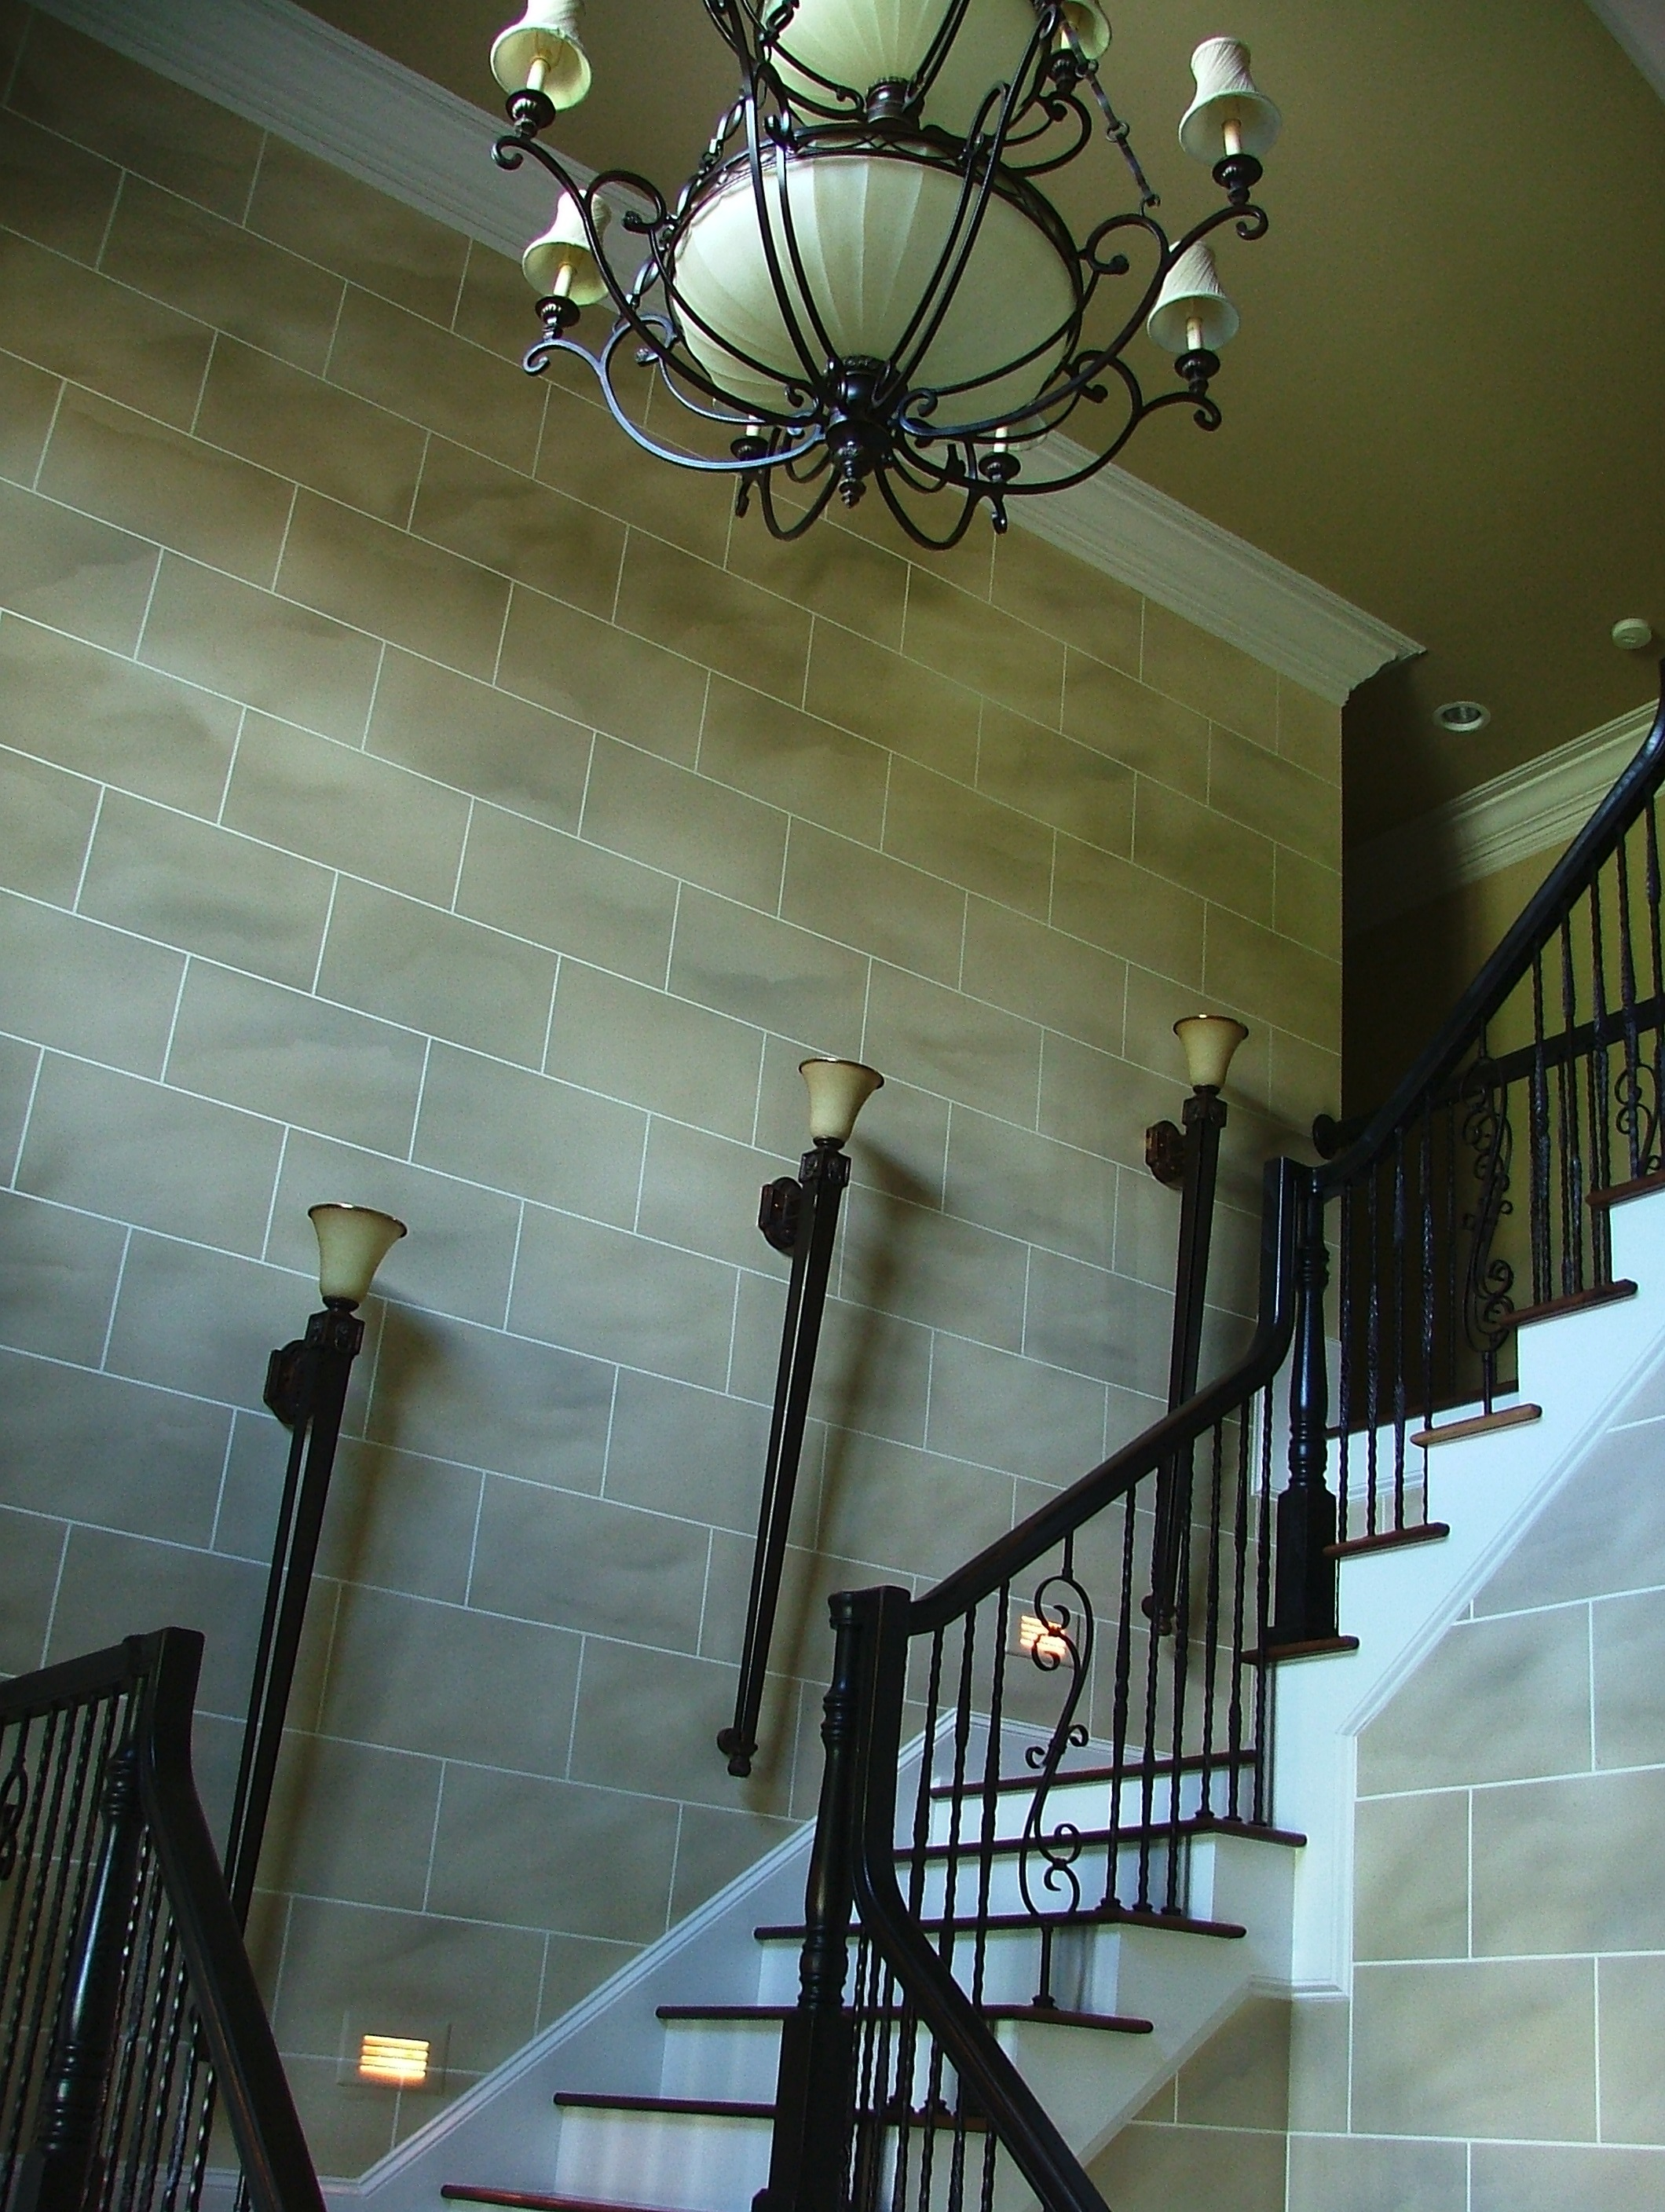 The Grand Entry Foyer